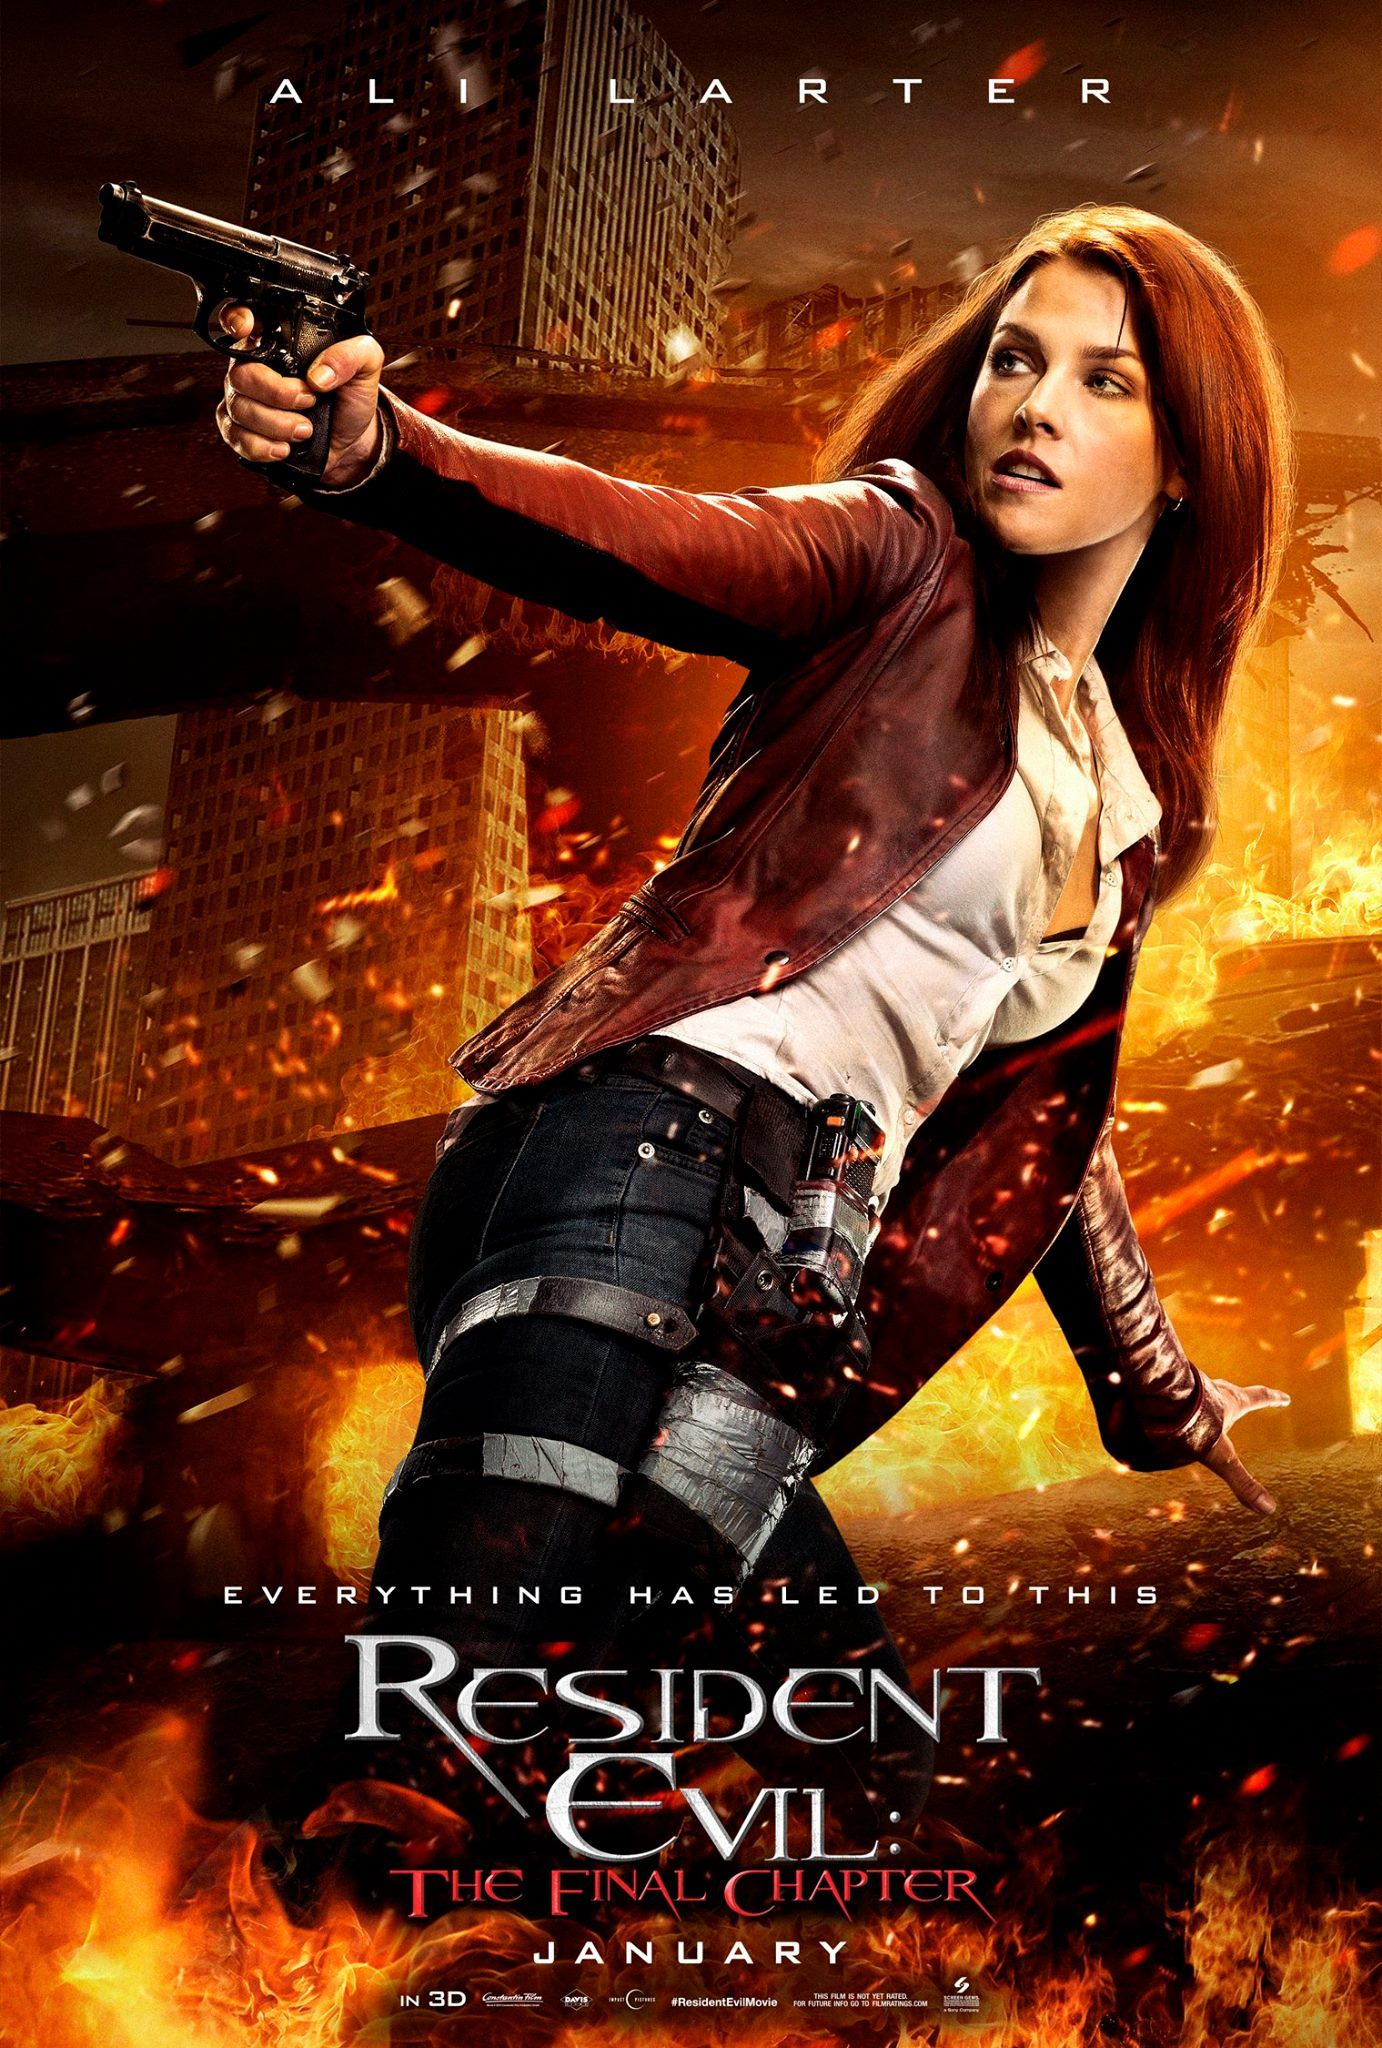 Resident Evil: Ostatni rozdział / Resident Evil The Final Chapter (2016) PL.BRRip.XVid-FOX / Lektor PL